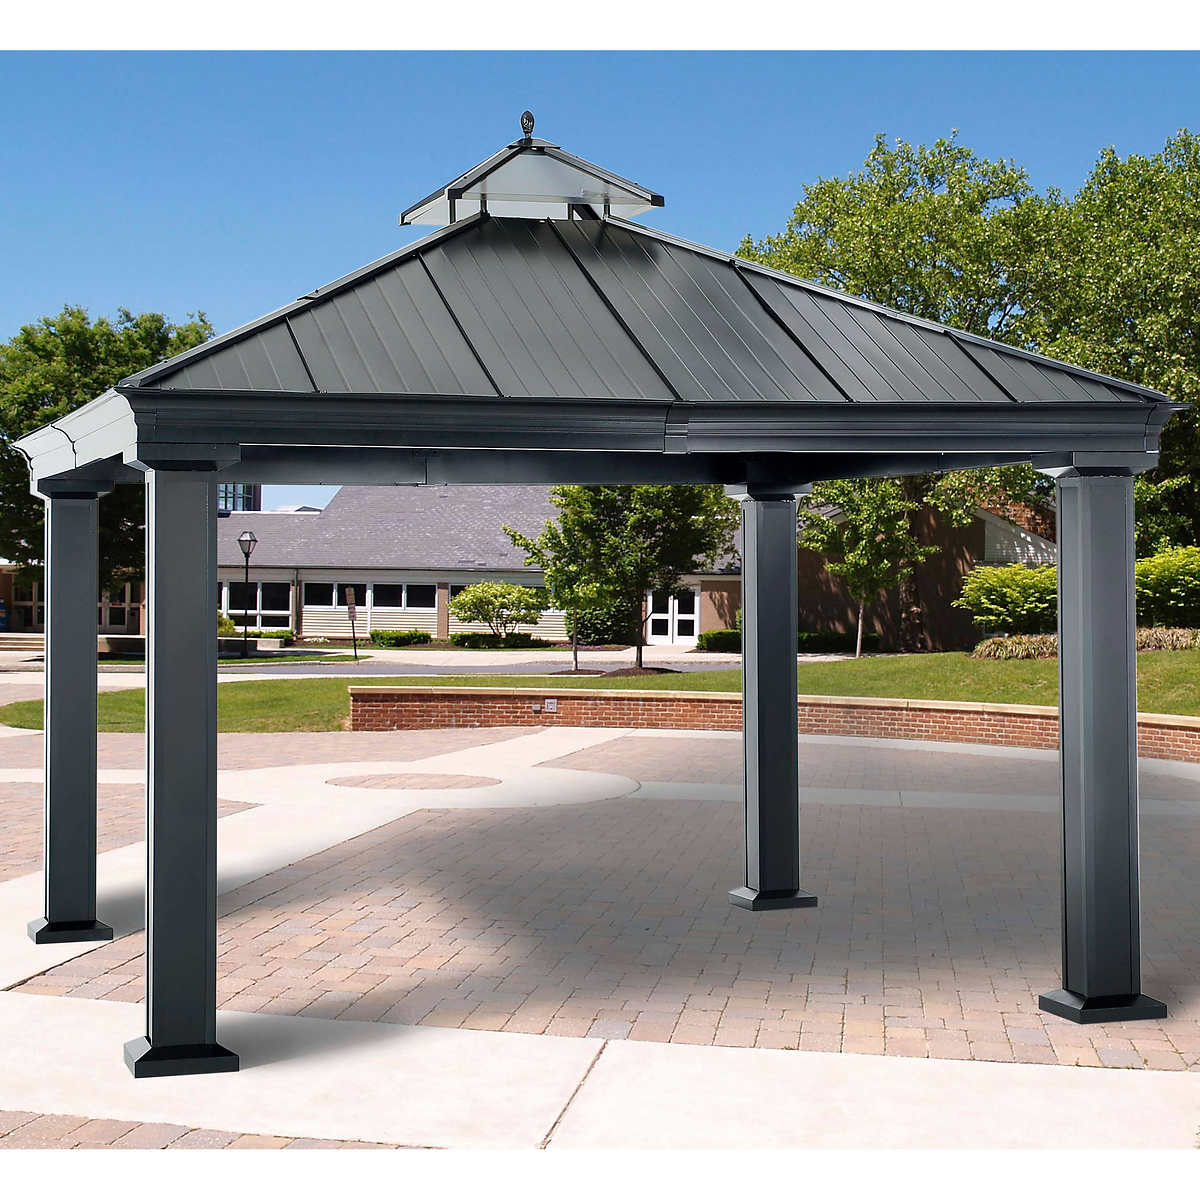 Sunjoy 12 ft. x 12 ft. Royal Square Hardtop Gazebo